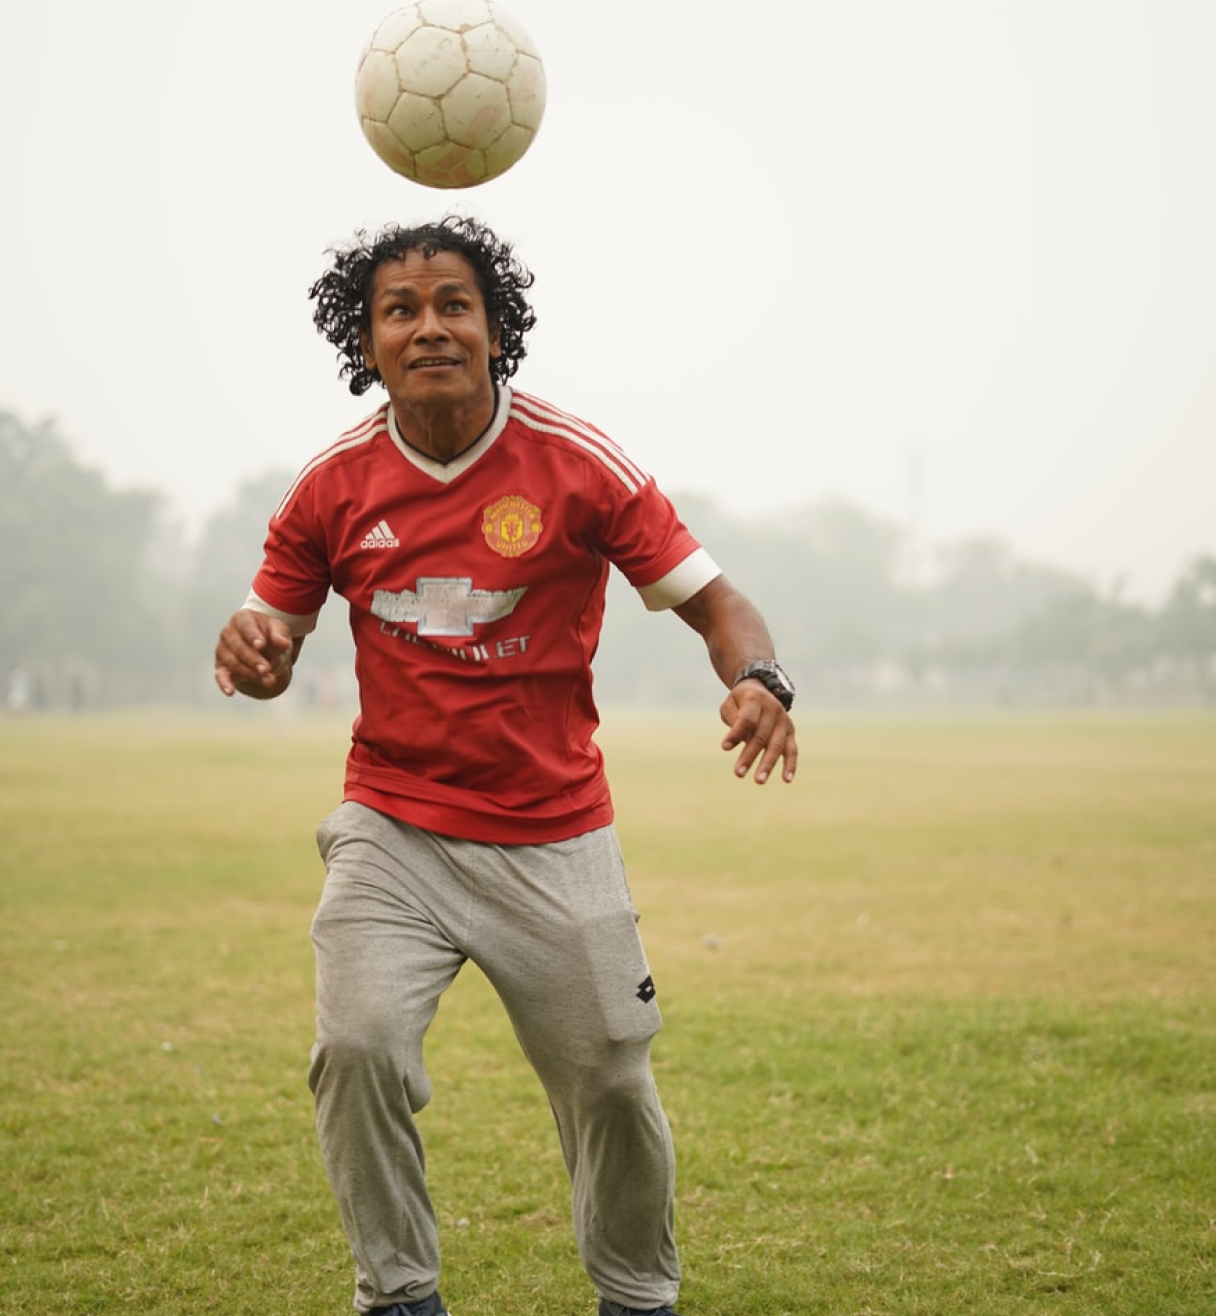 Boy playing football (soccer) in a green field